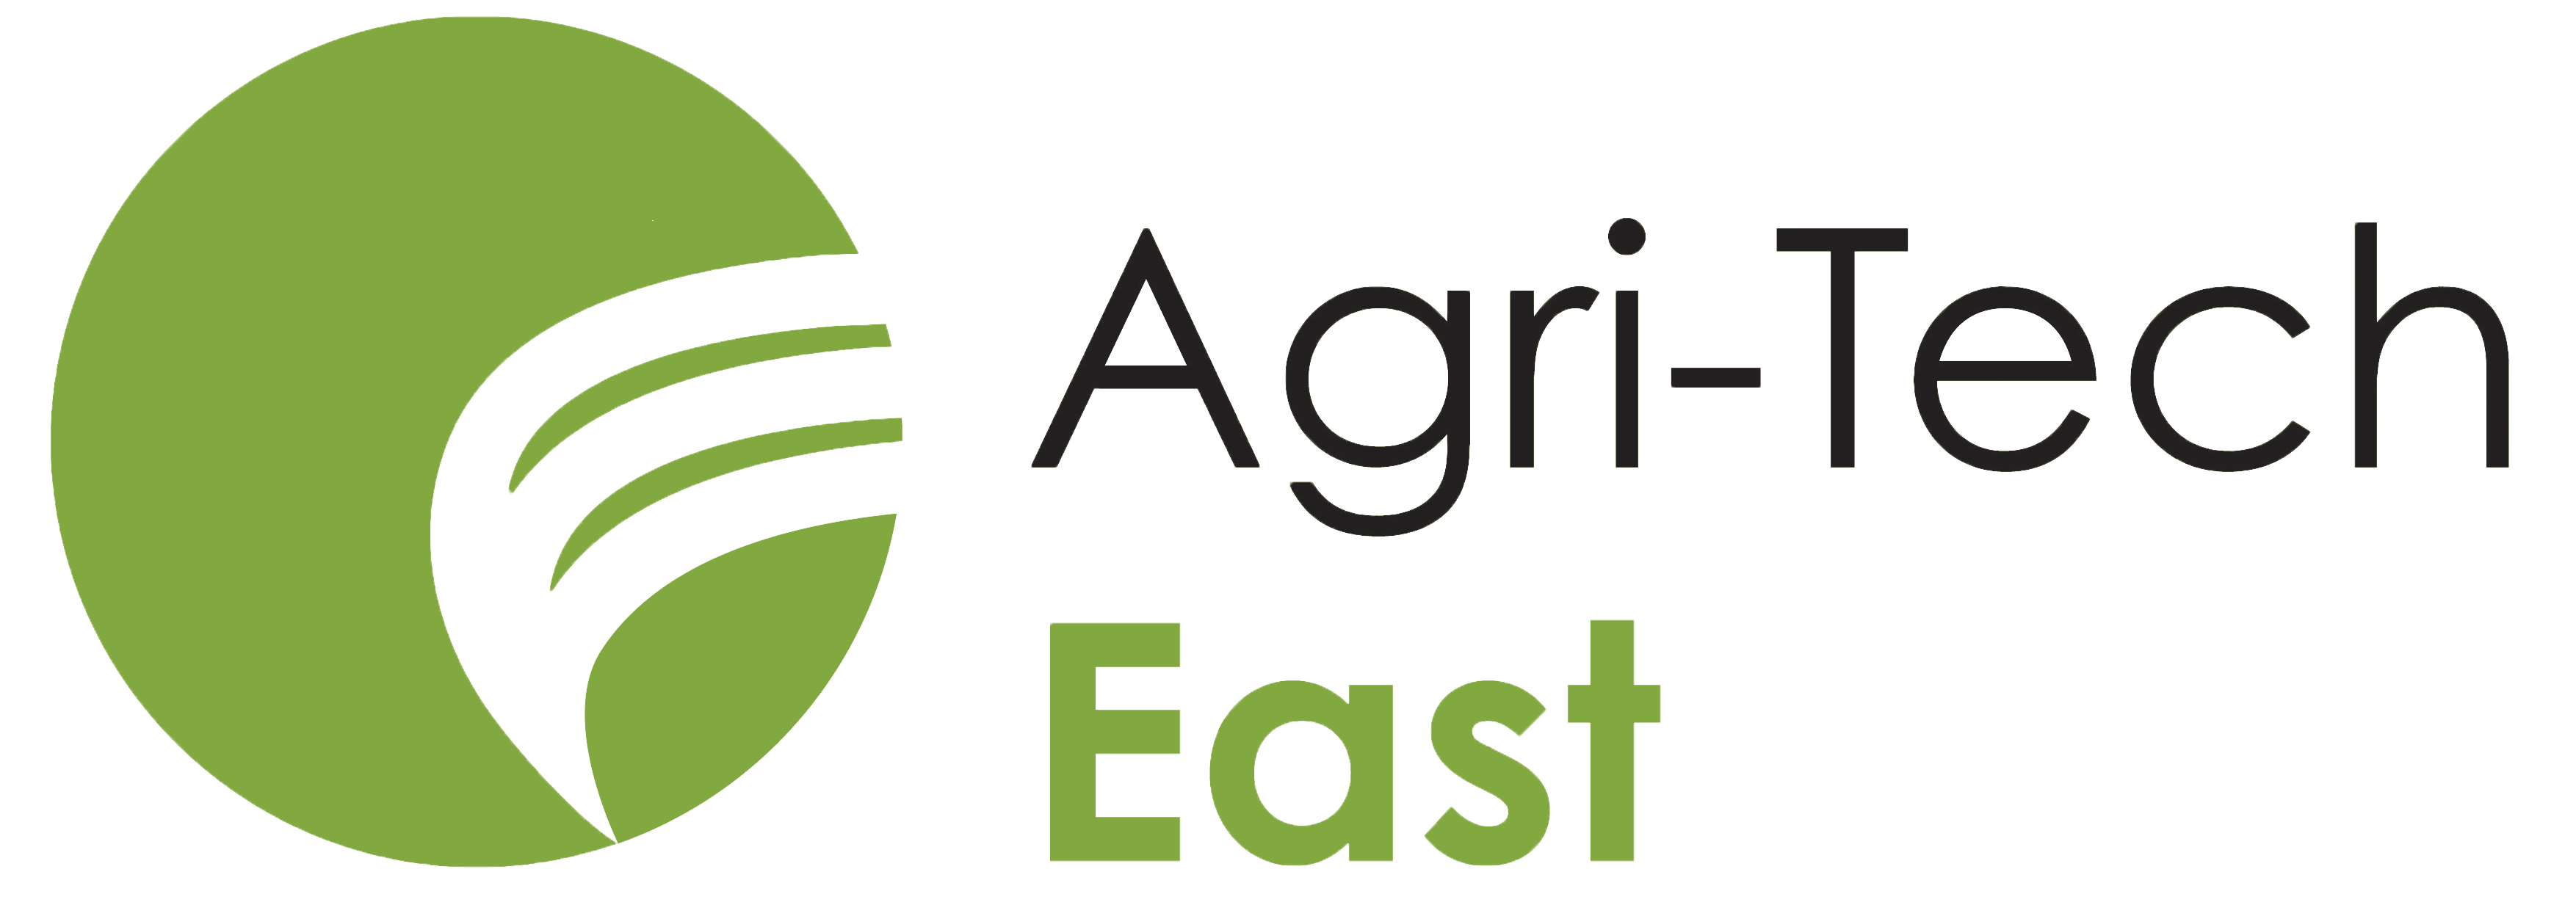 Agri-Tech East logo